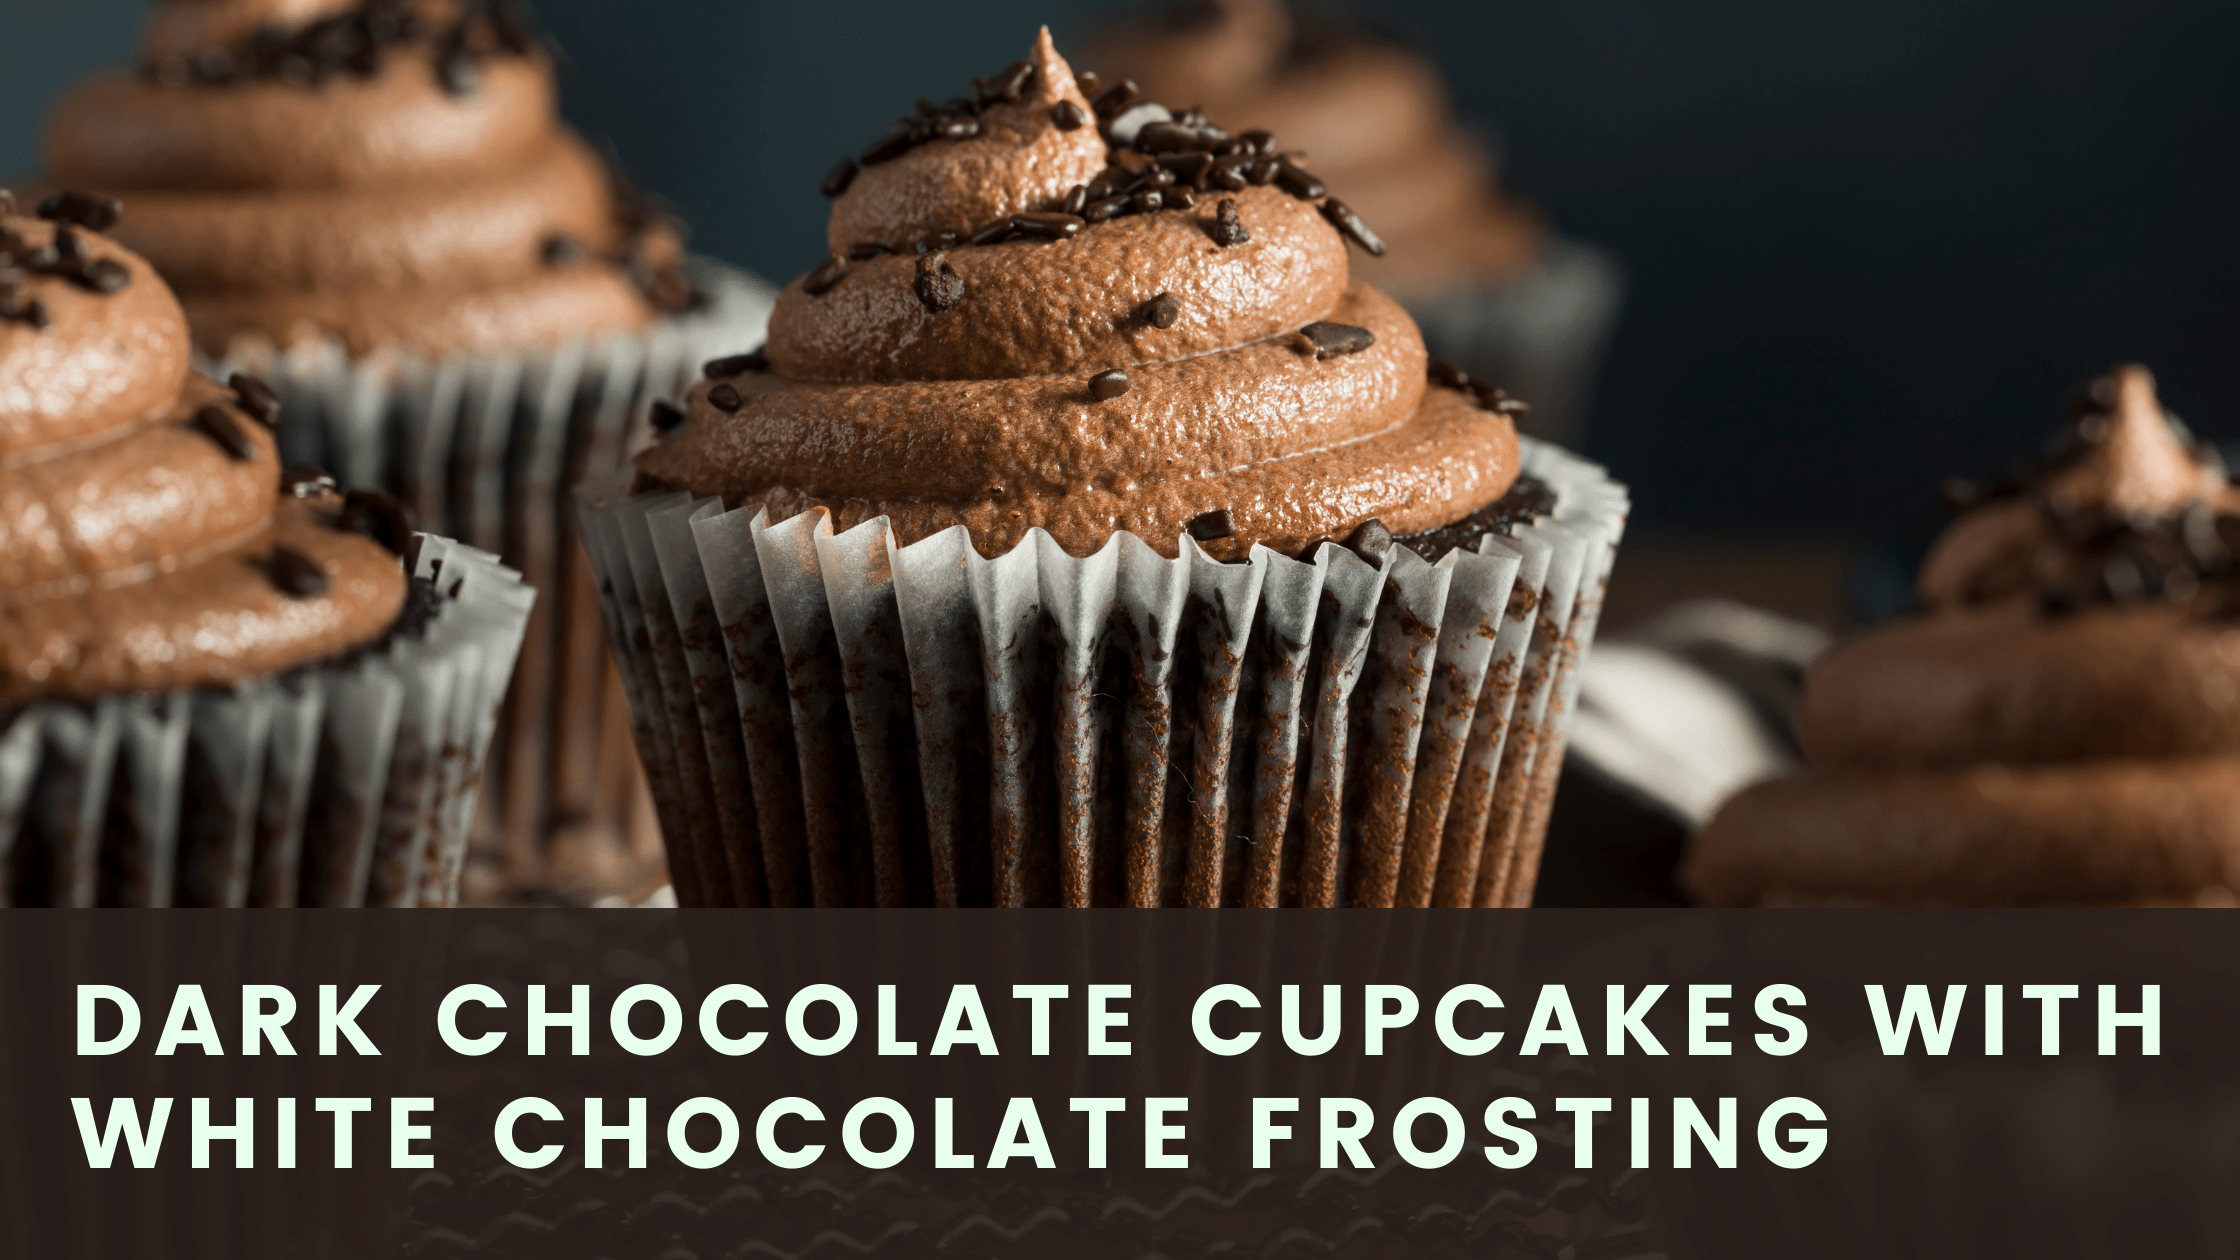 Dark Chocolate Cupcakes recipe with White Chocolate Frosting